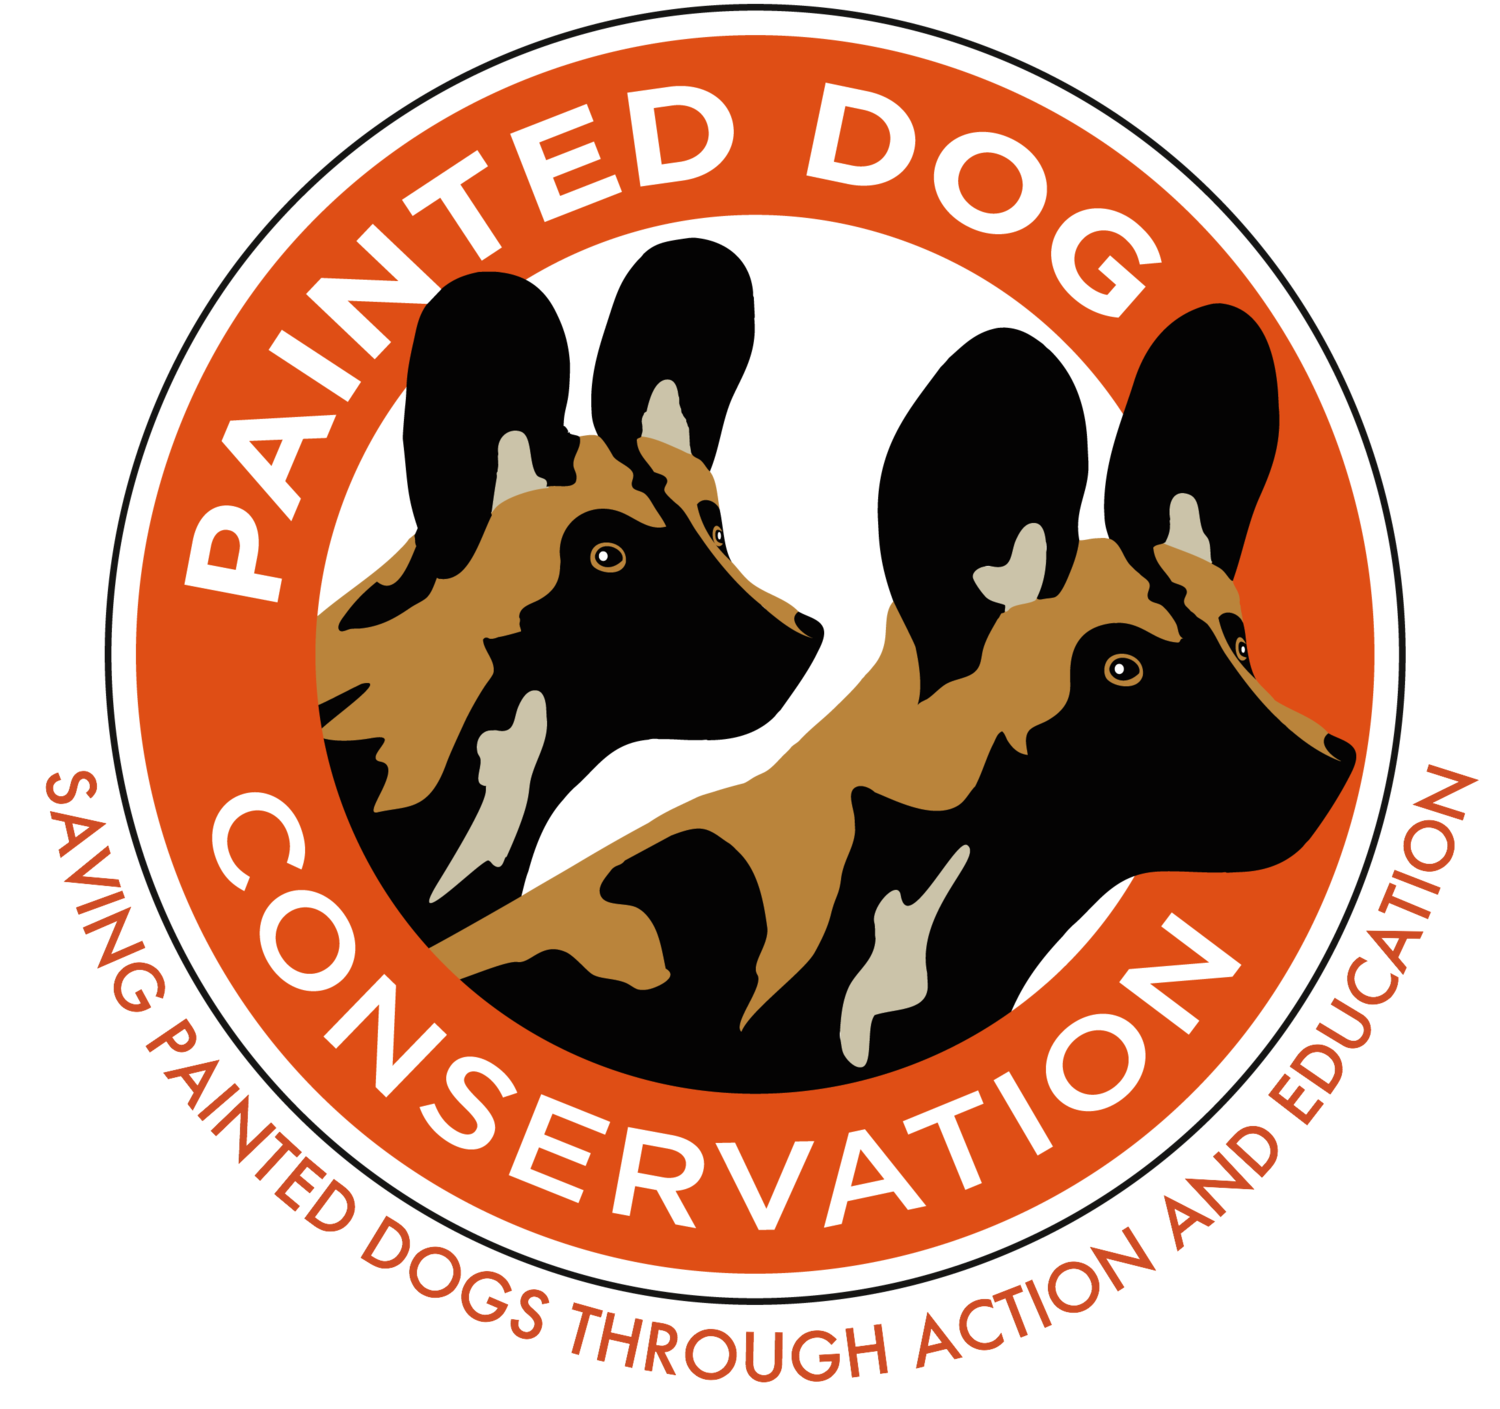 Painted Dog Conservation